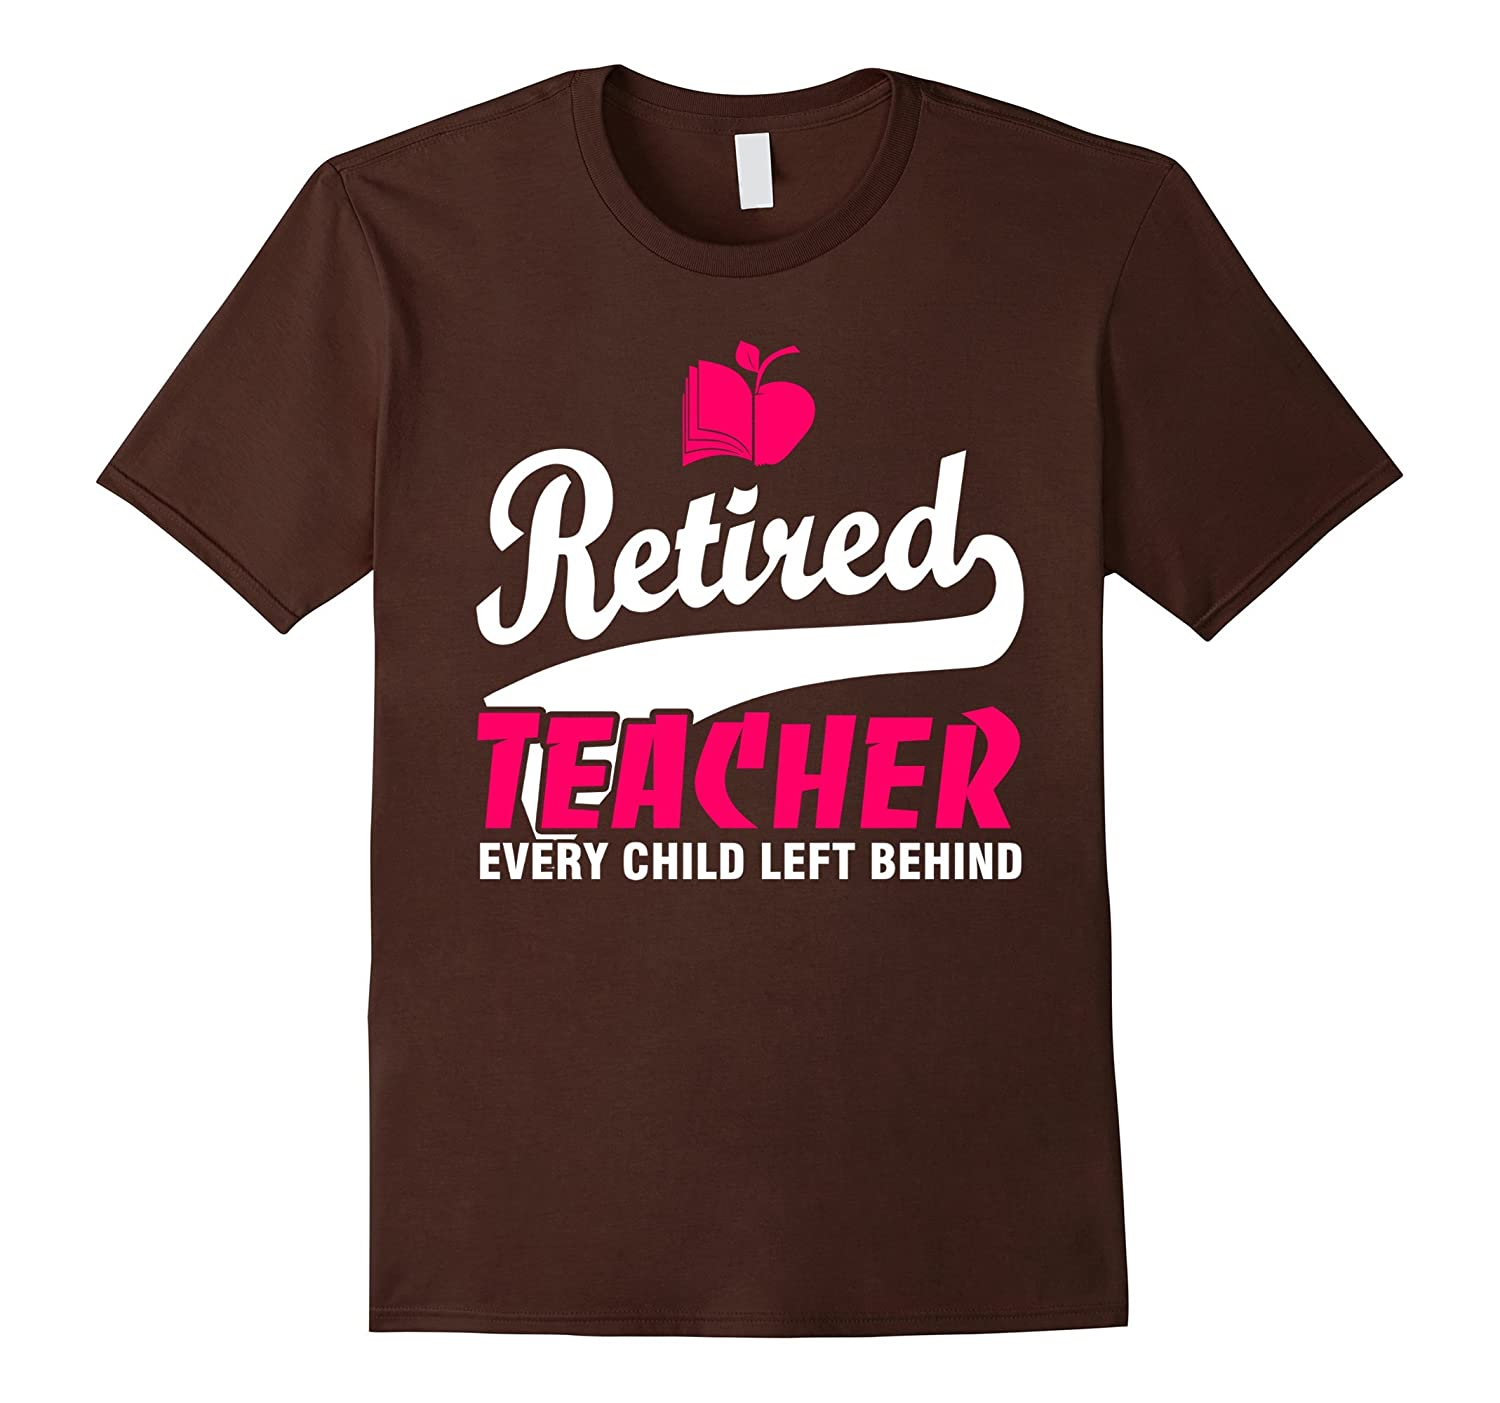 Every Child Left Behind Retired Teacher Gifts Shirt-CD